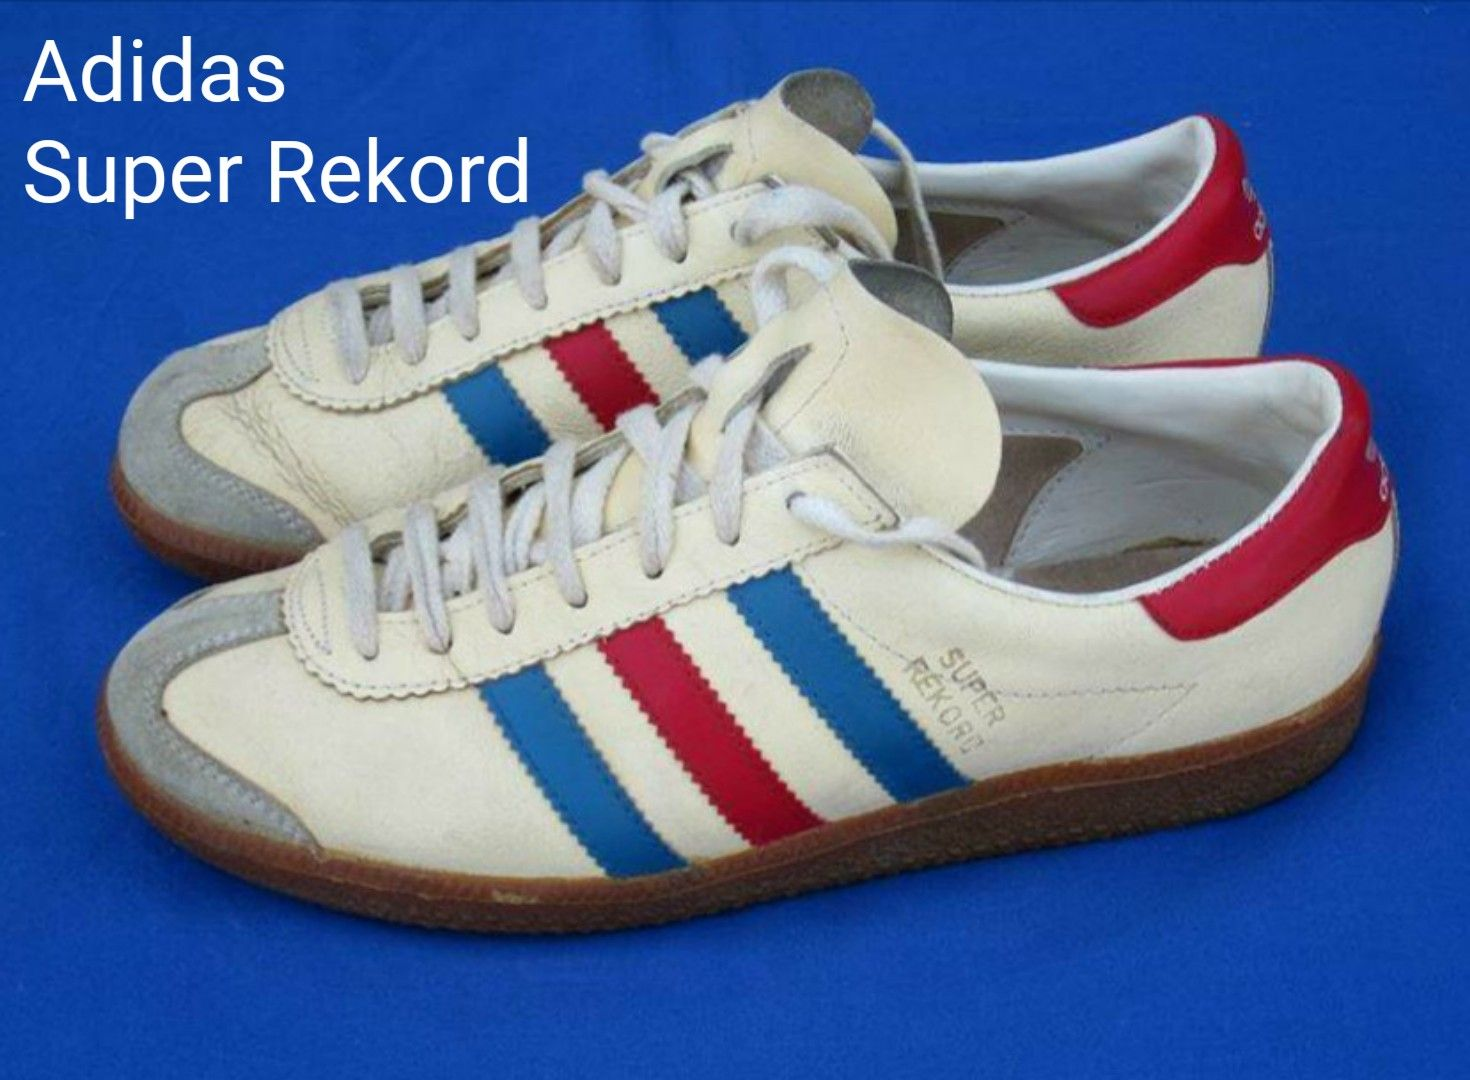 Vintage Adidas Super Rekord, made in Yugoslavia. Nice these